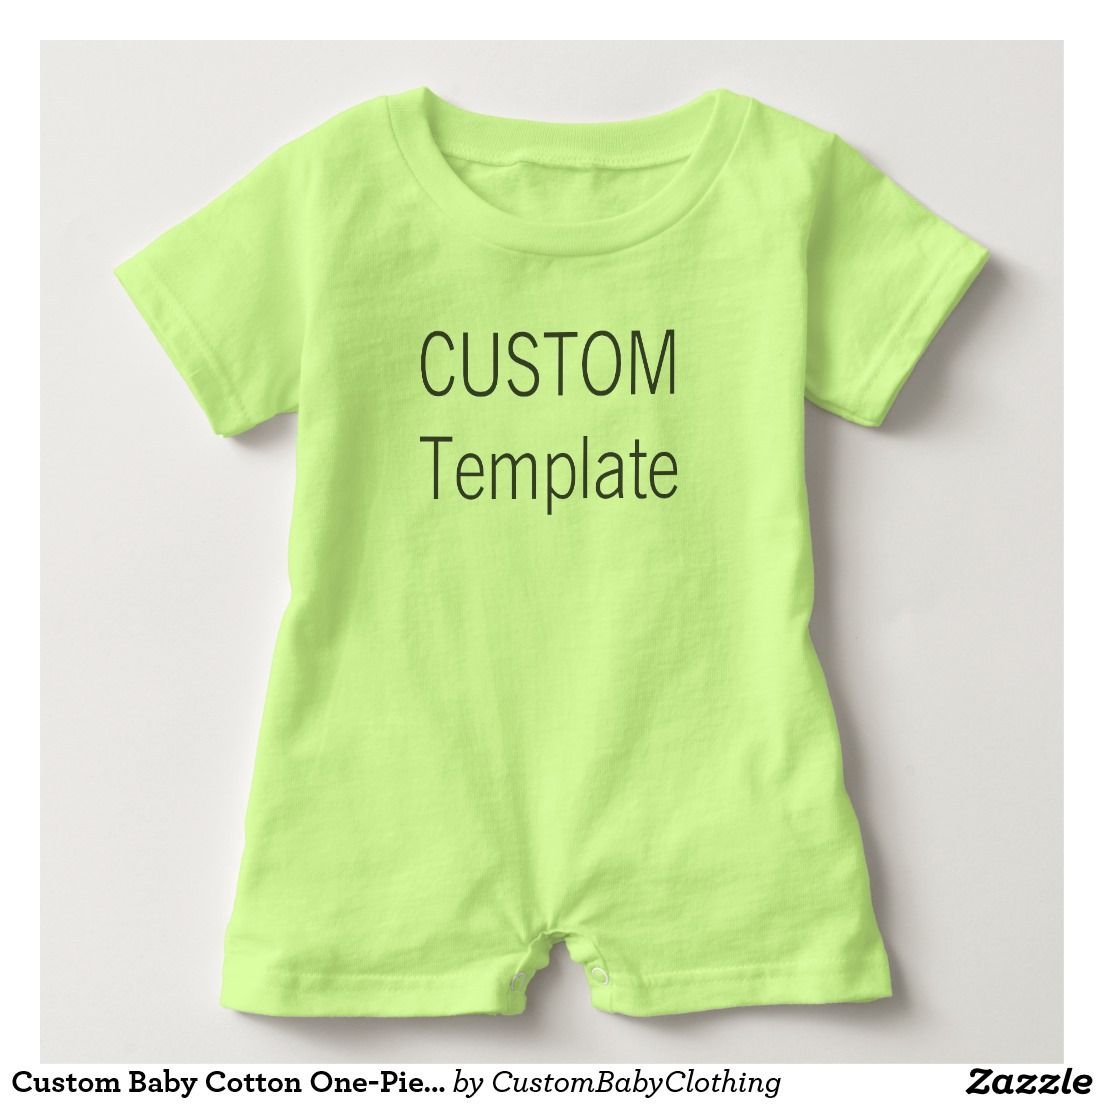 Zazzle t shirt design template - Babies